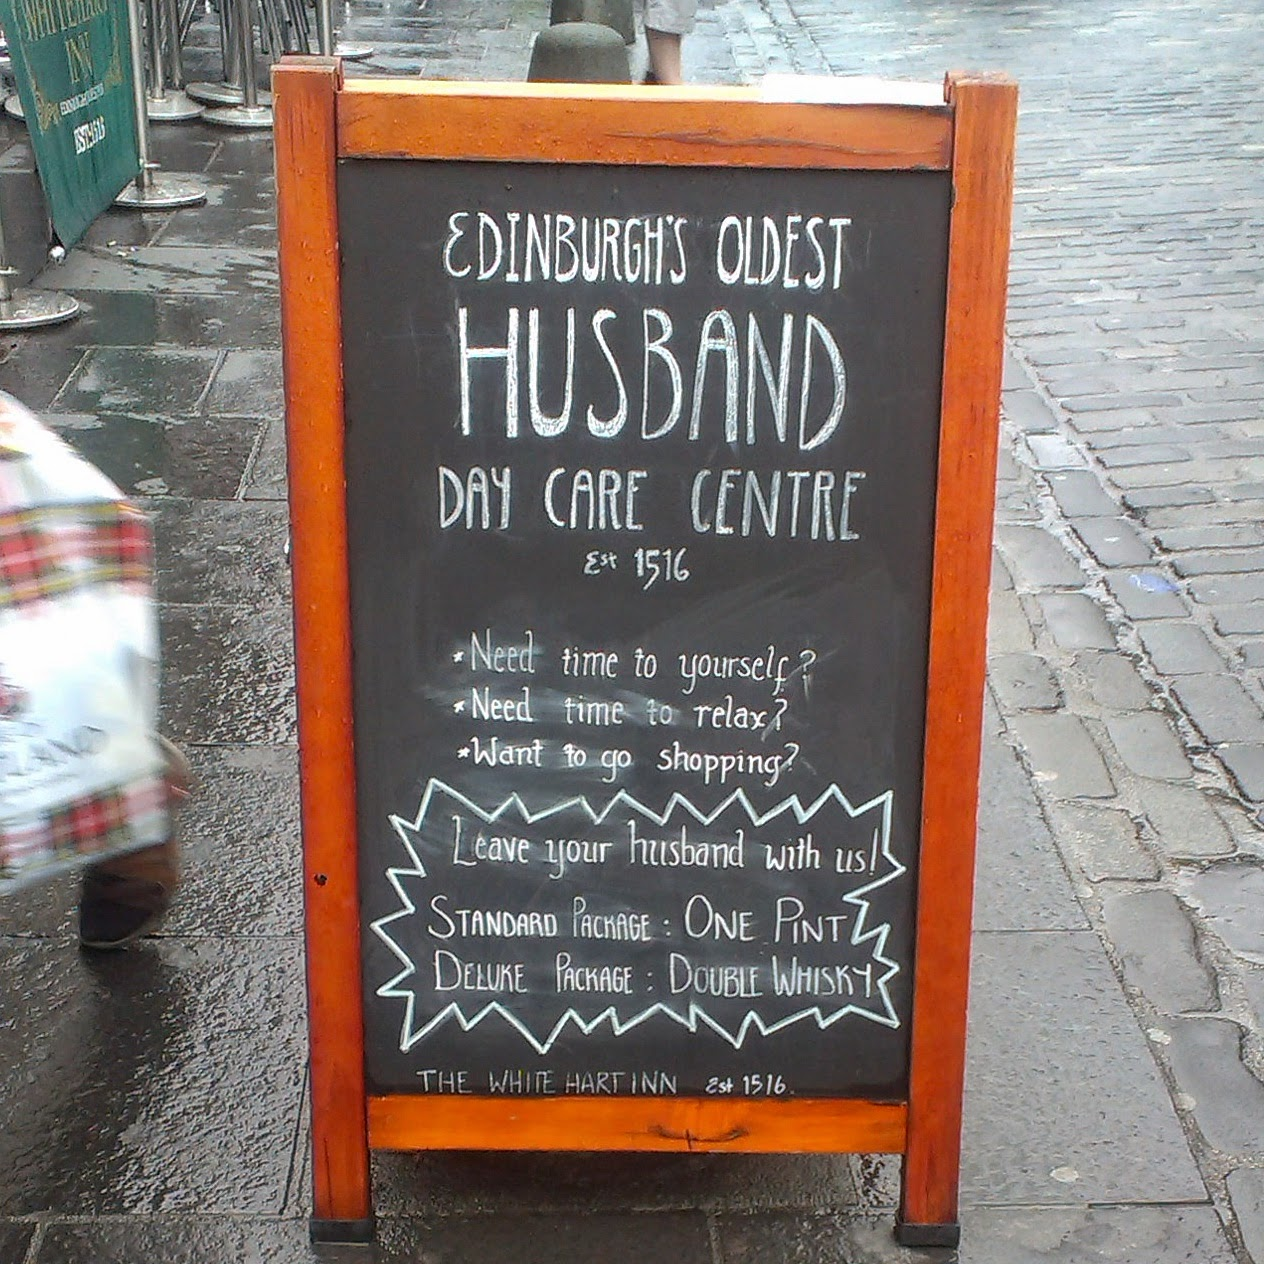 Edinburgh Husband Creche